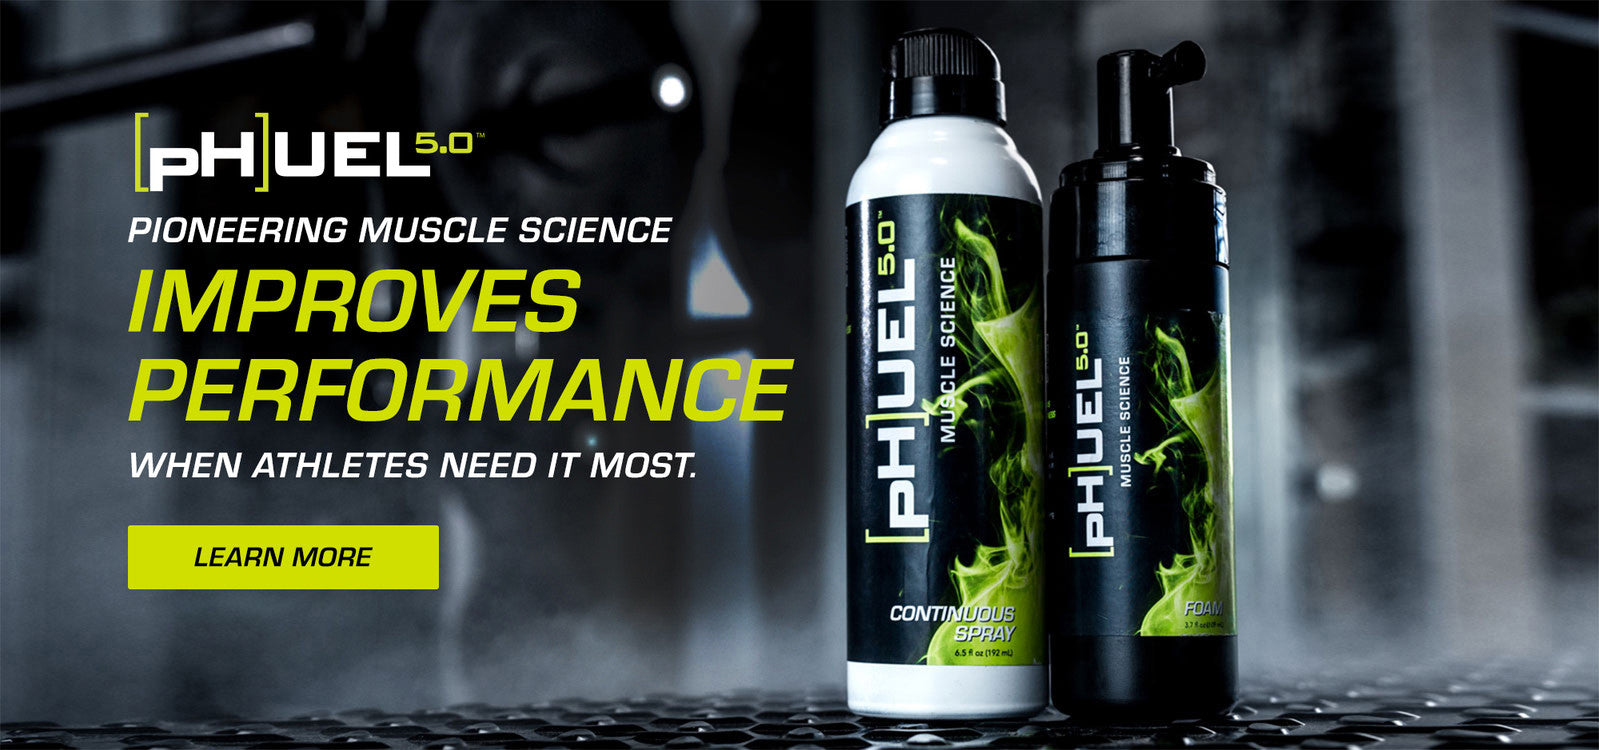 Phuel's pioneering muscle science improves performance when athletes need it most.